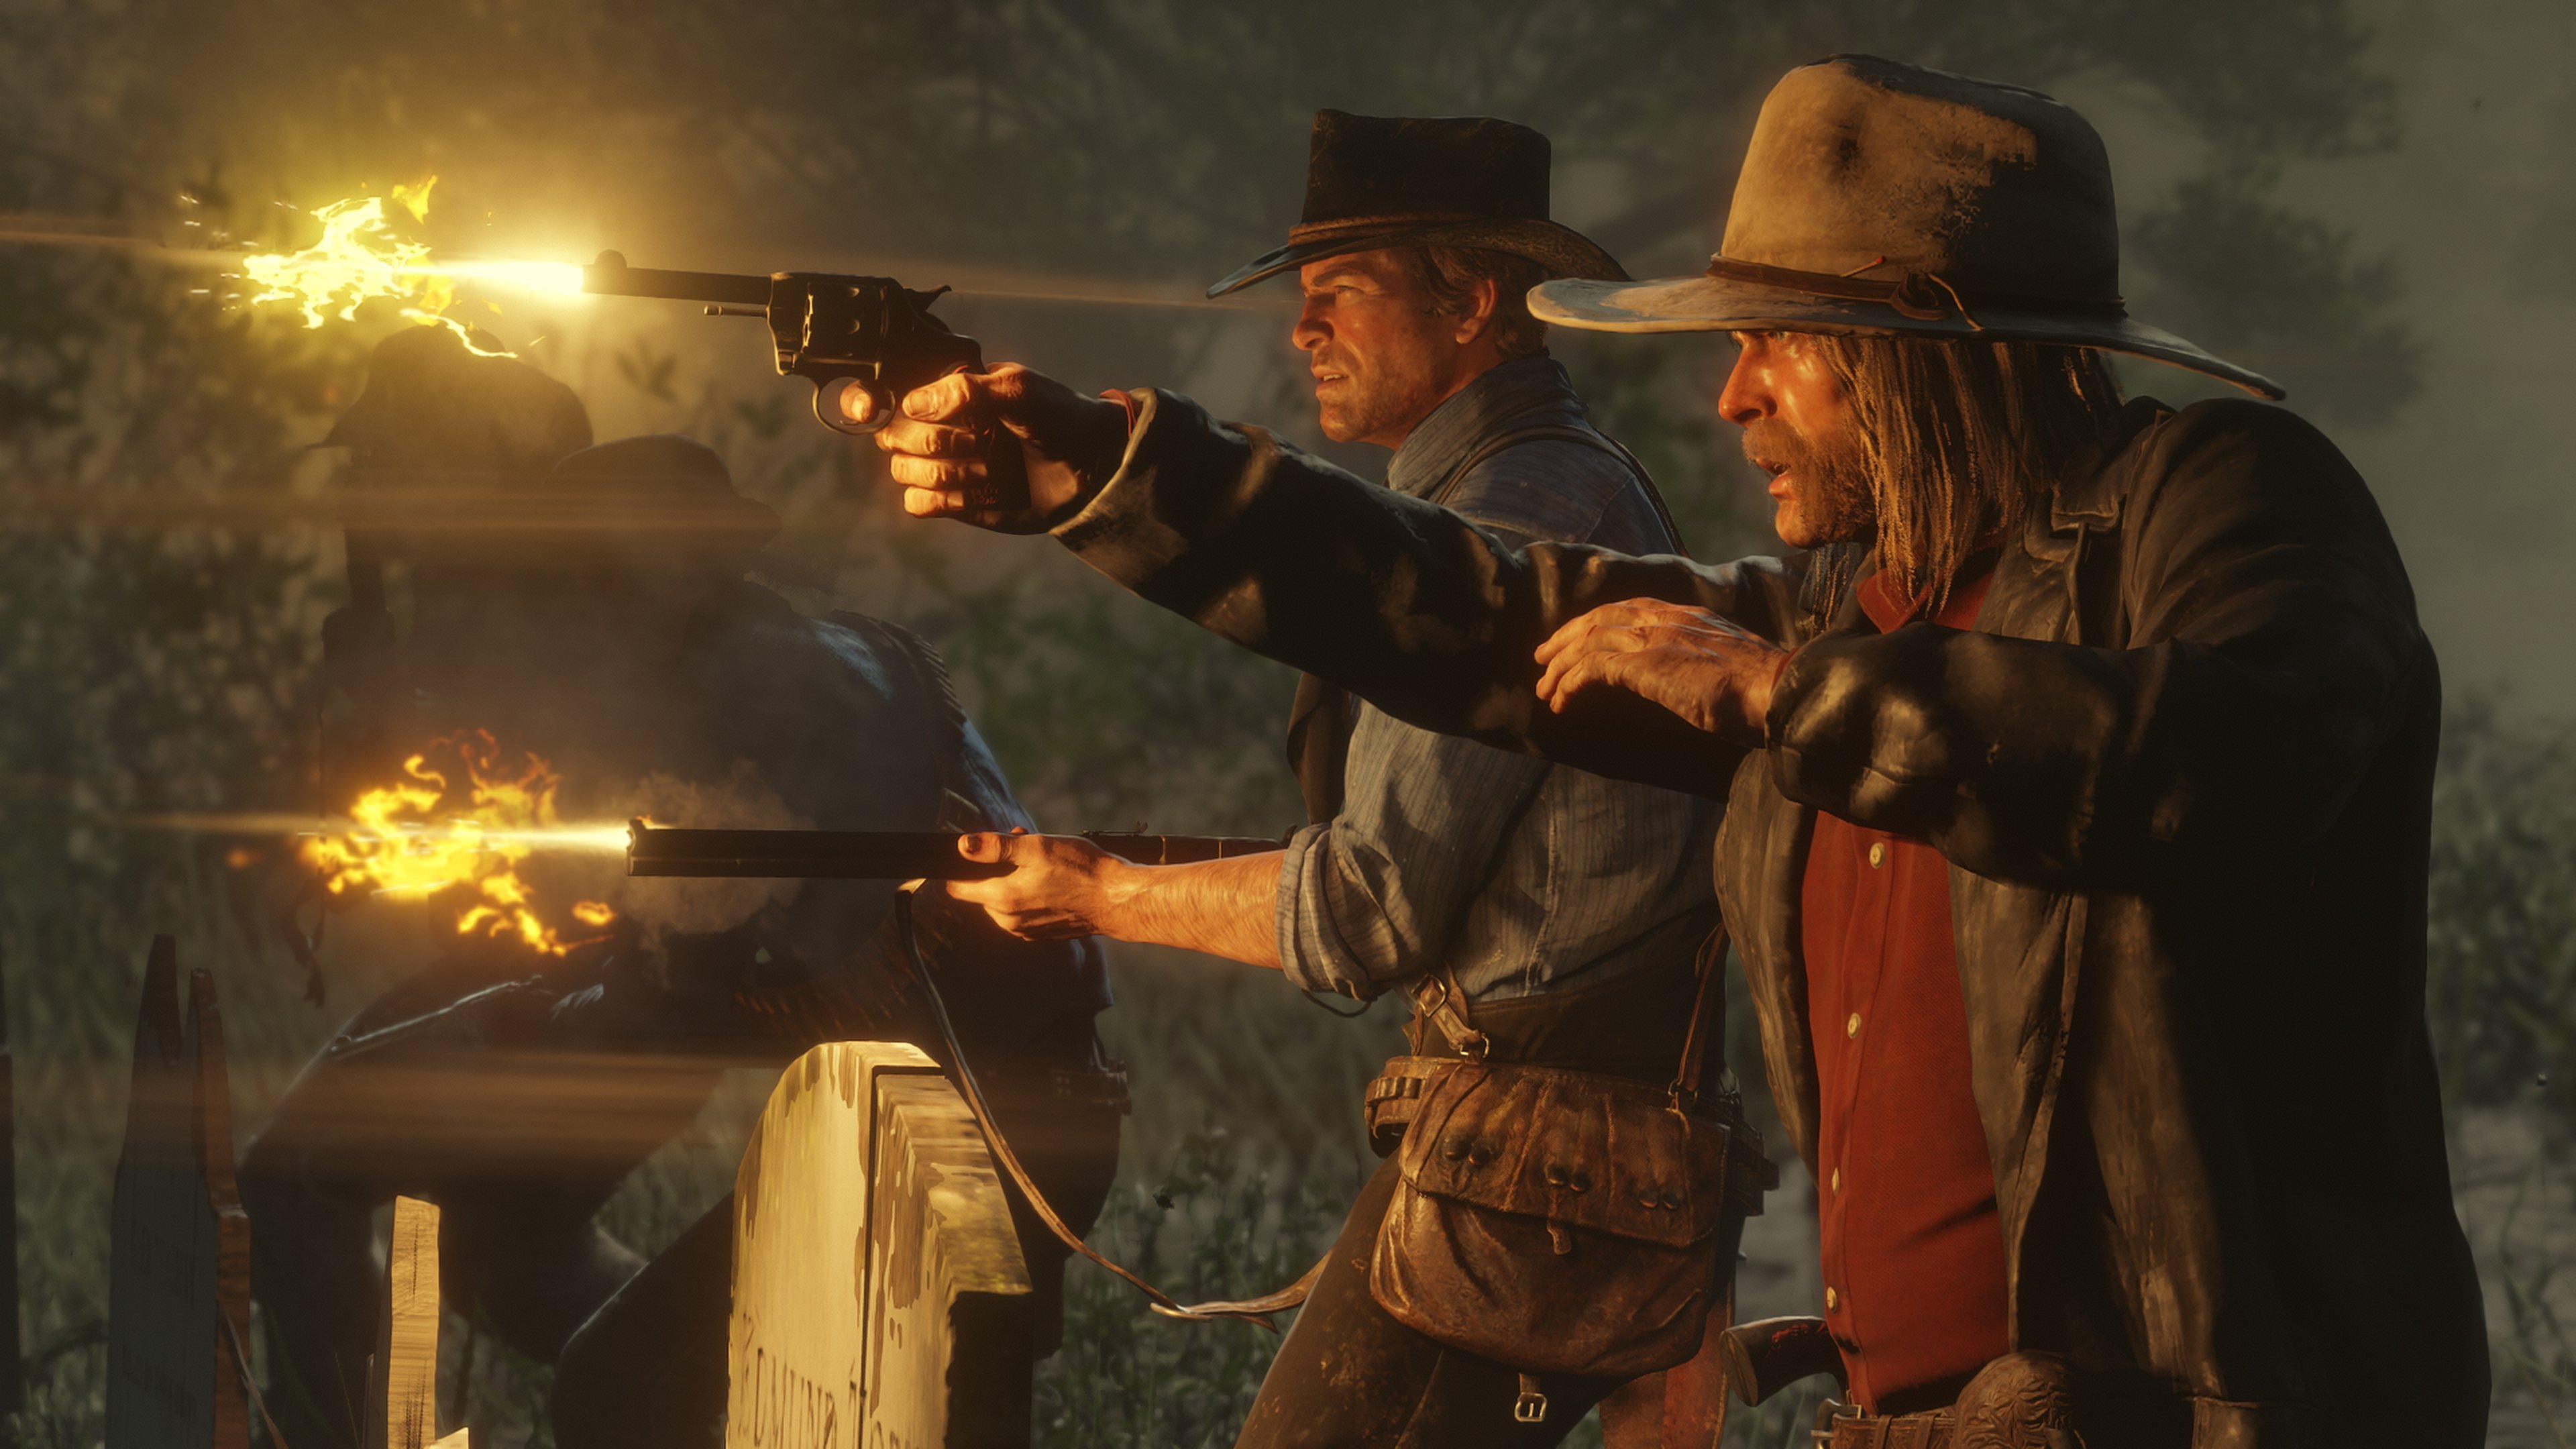 Red Dead Redemption 2 - What Are the Best Weapons? - Guide